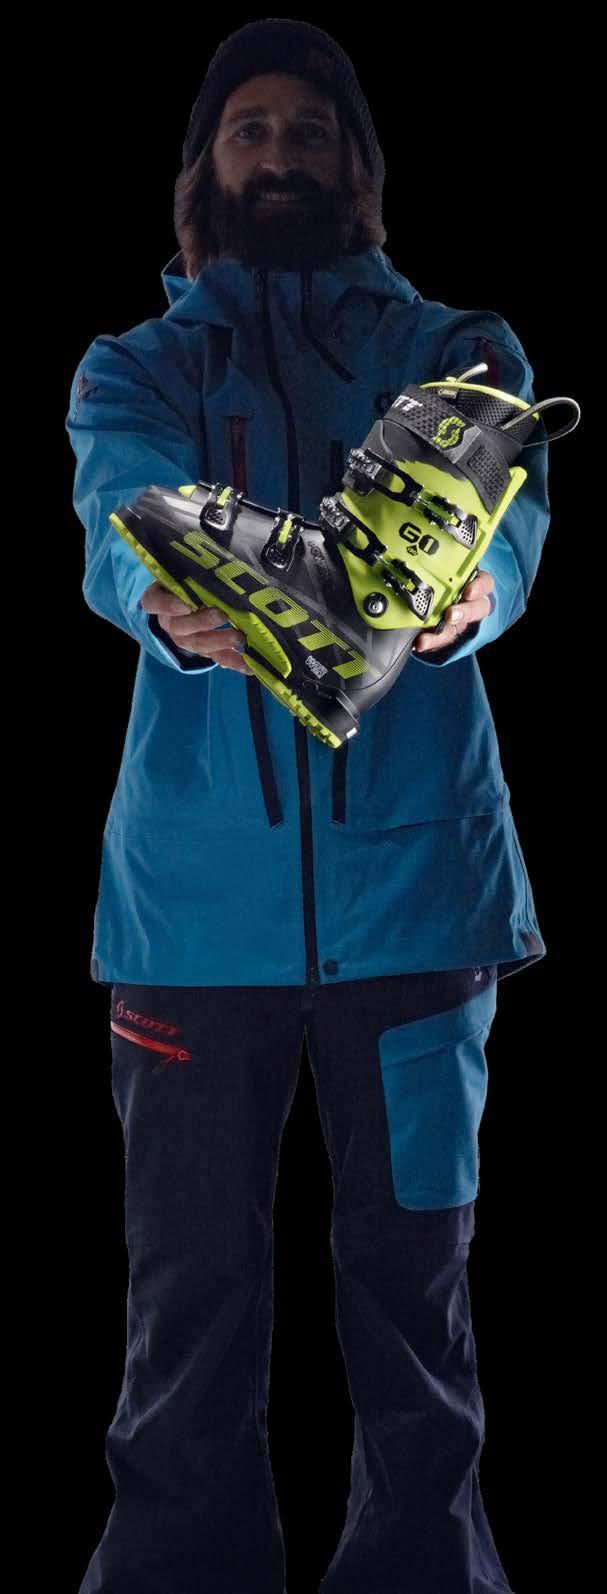 S COT T FREES ANYWHERE, ANYTIME COMFORT AND PERFORMANCE SCOTT OFFERS A FRESH LINEUP OF FREESKI-ORIENTED BOOTS FOR 2015-16 TO DRIVE SKIERS TO EXPLORE ALL MOUNTAIN TERRAIN.